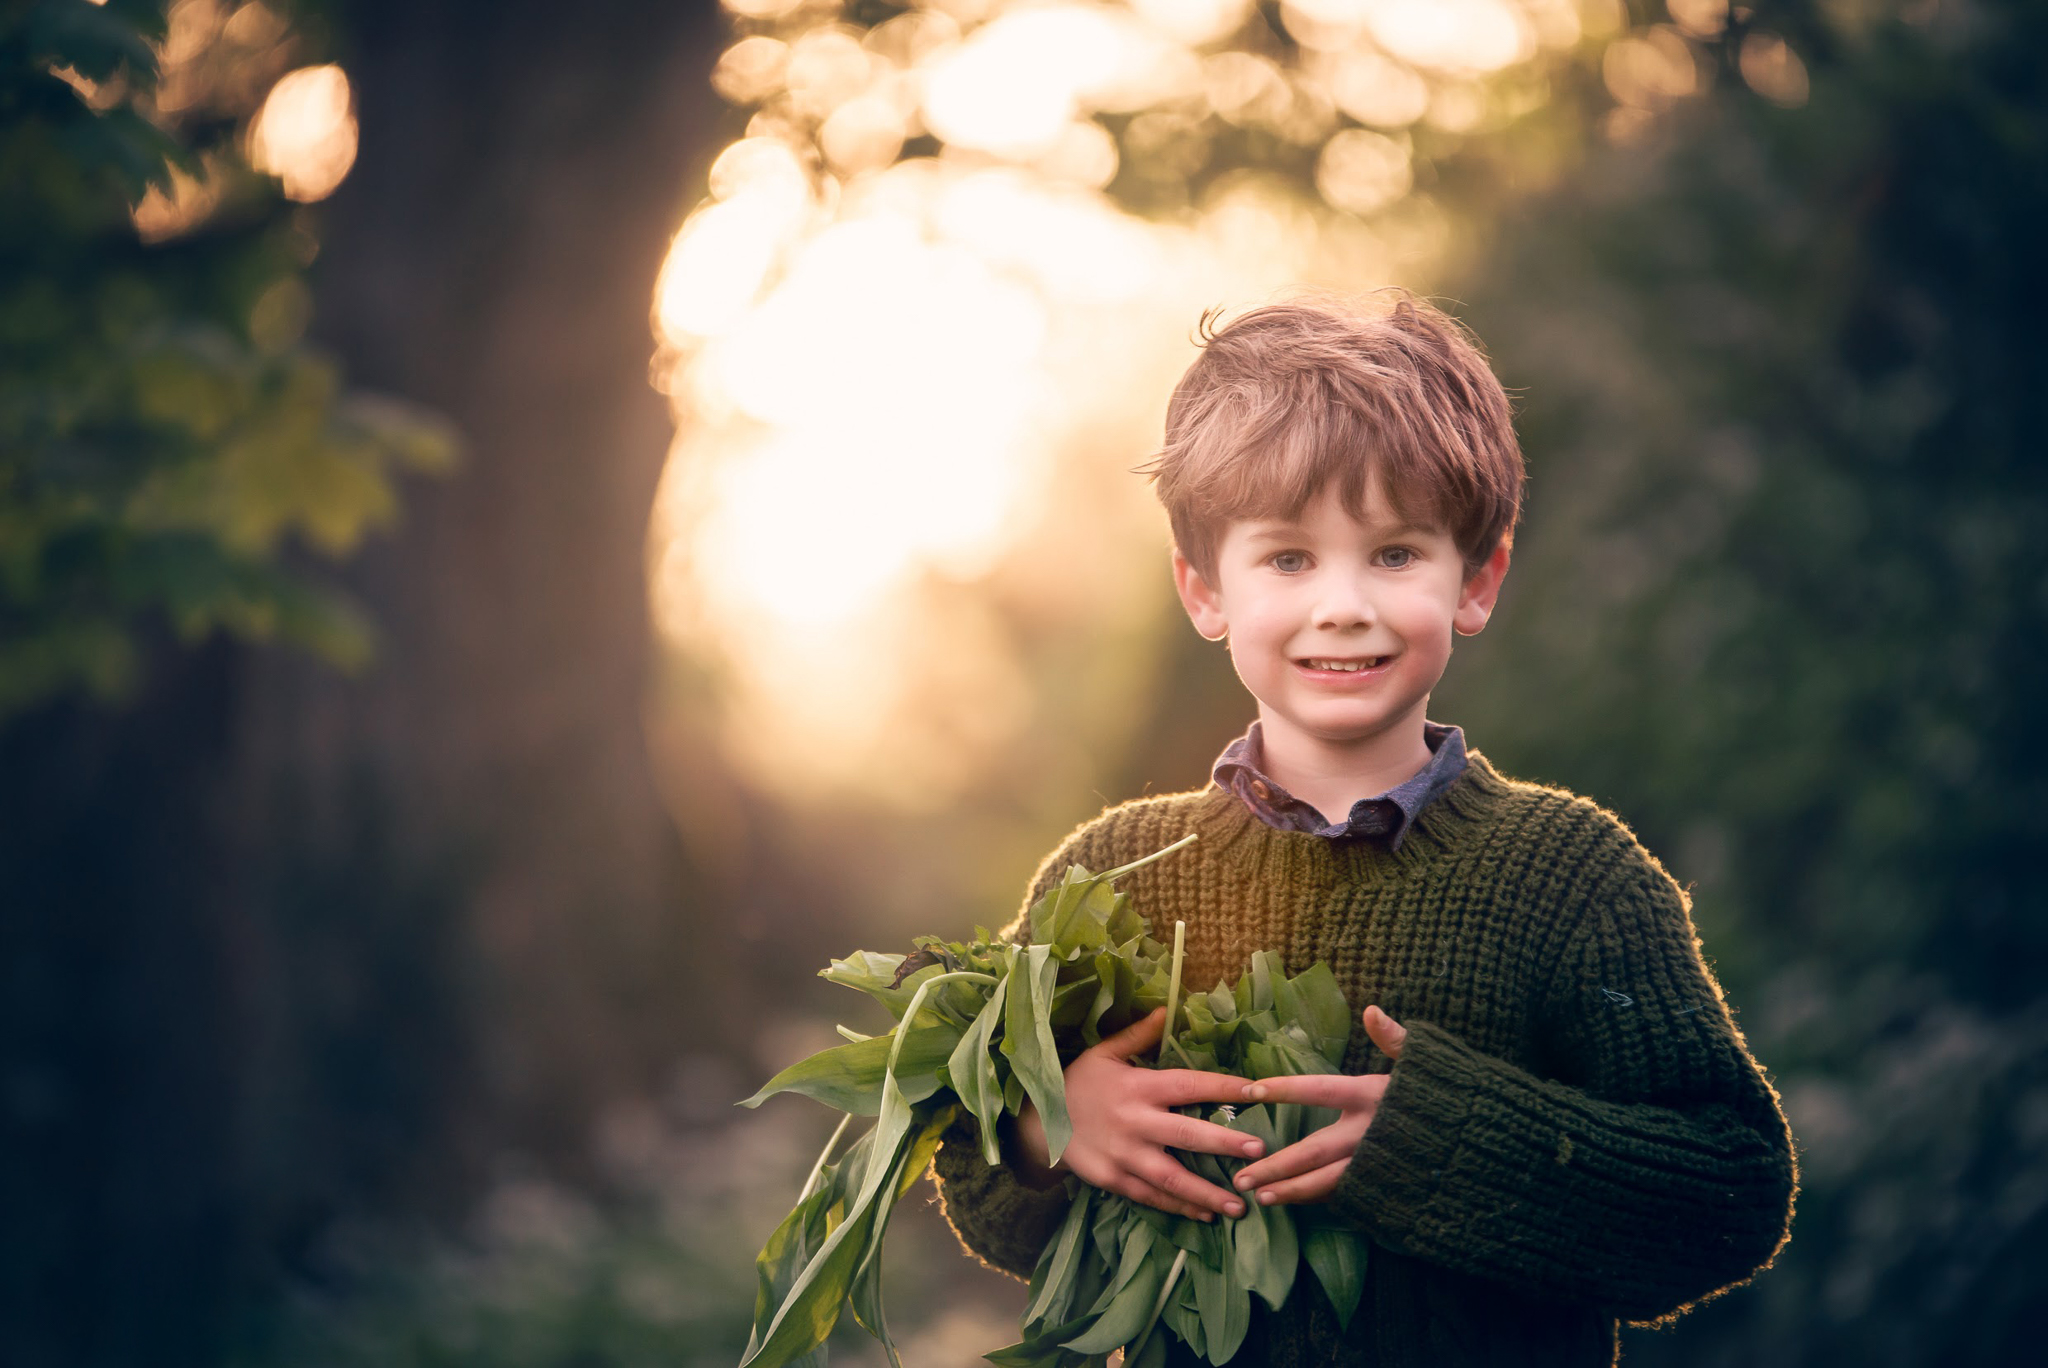 Boy smiling in the woods at sunset